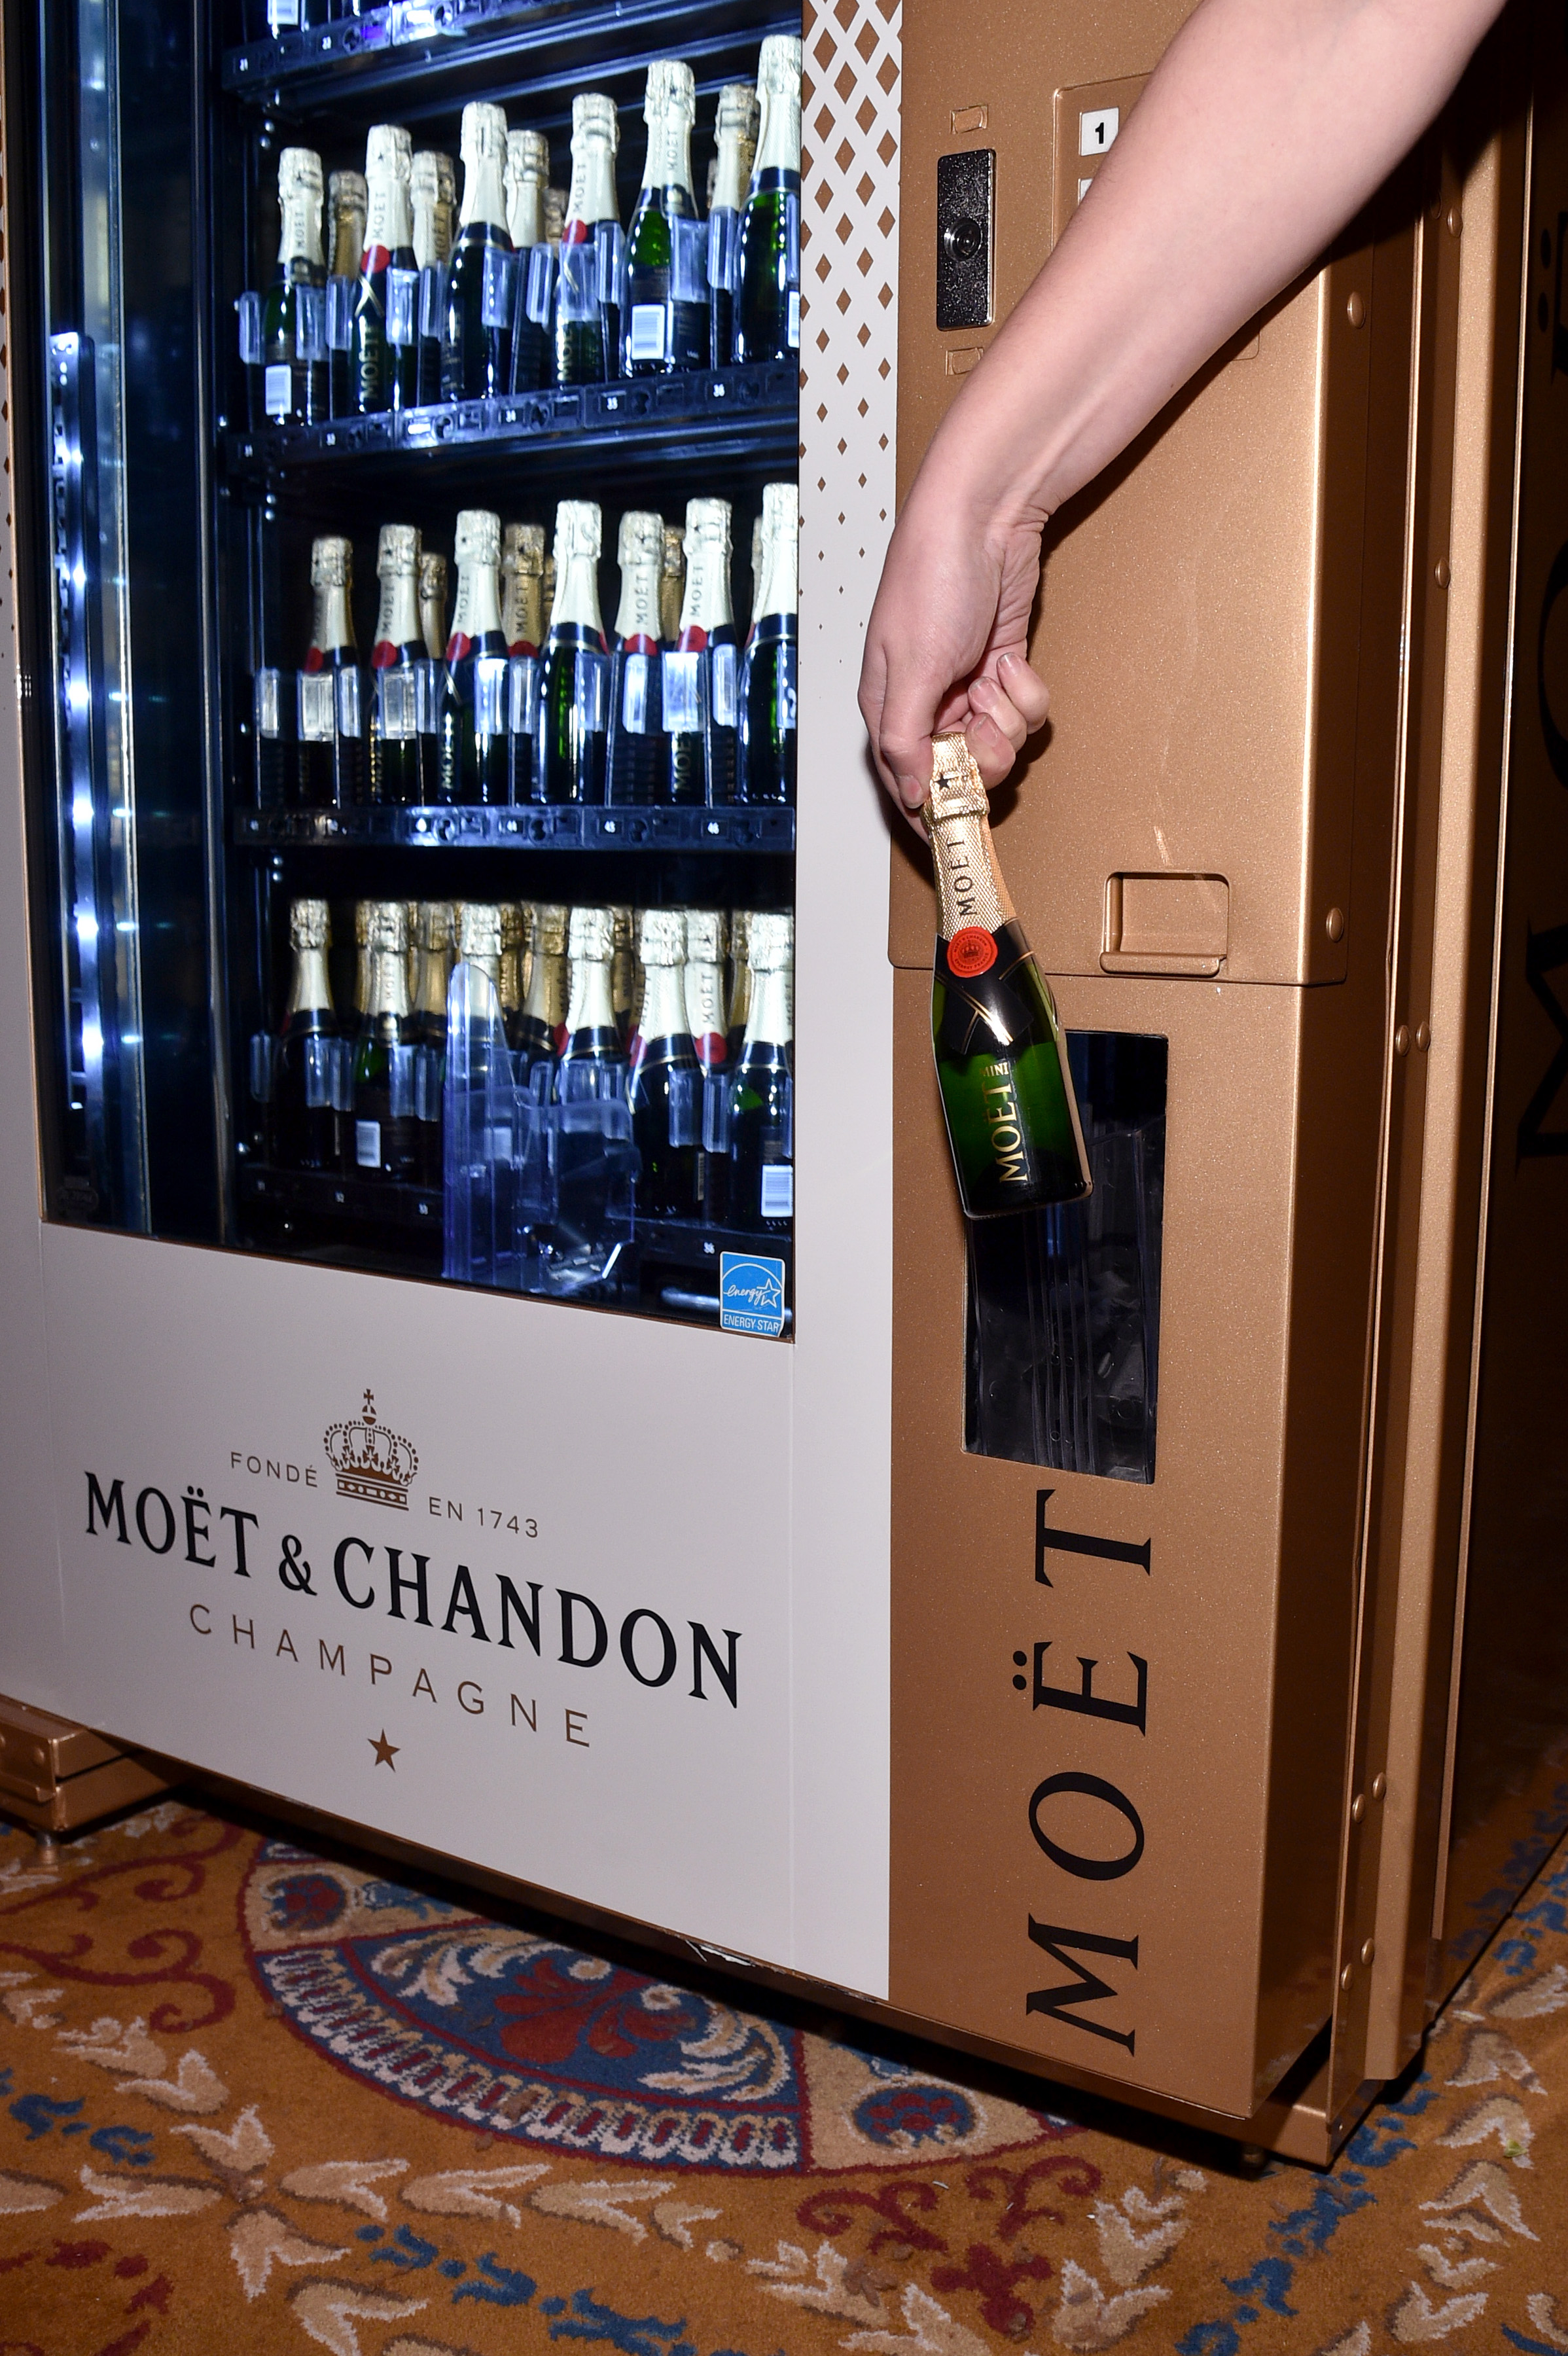 NEW YORK, NY - FEBRUARY 08:  A view of the Moet & Chandon bottles on display as Moet & Chandon Toasts to the amfAR New York Gala At Cipriani Wall Street at Cipriani Wall Street on February 8, 2017 in New York City.  (Photo by Bryan Bedder/Getty Images for Moet & Chandon)